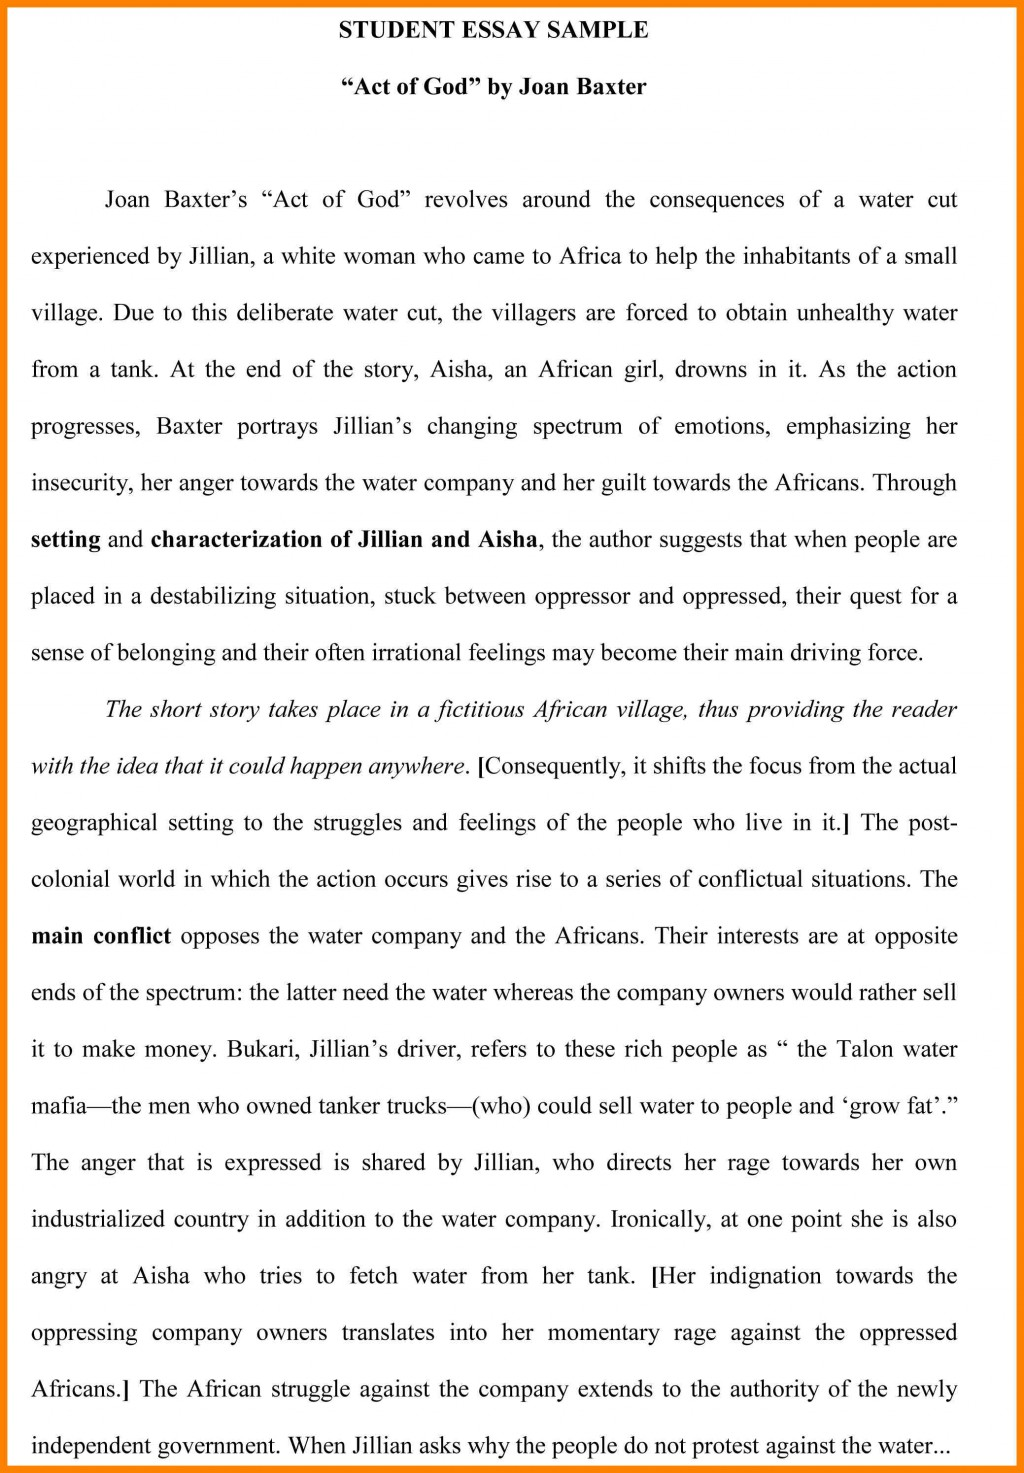 018 Examples Of Process Essays Pdf How To Write Good Student Better Download Descriptive Great Law Steve Foster Lauren Starkey Essay Example Montaigne Astounding Summary On Experience Repentance Cannibals Large